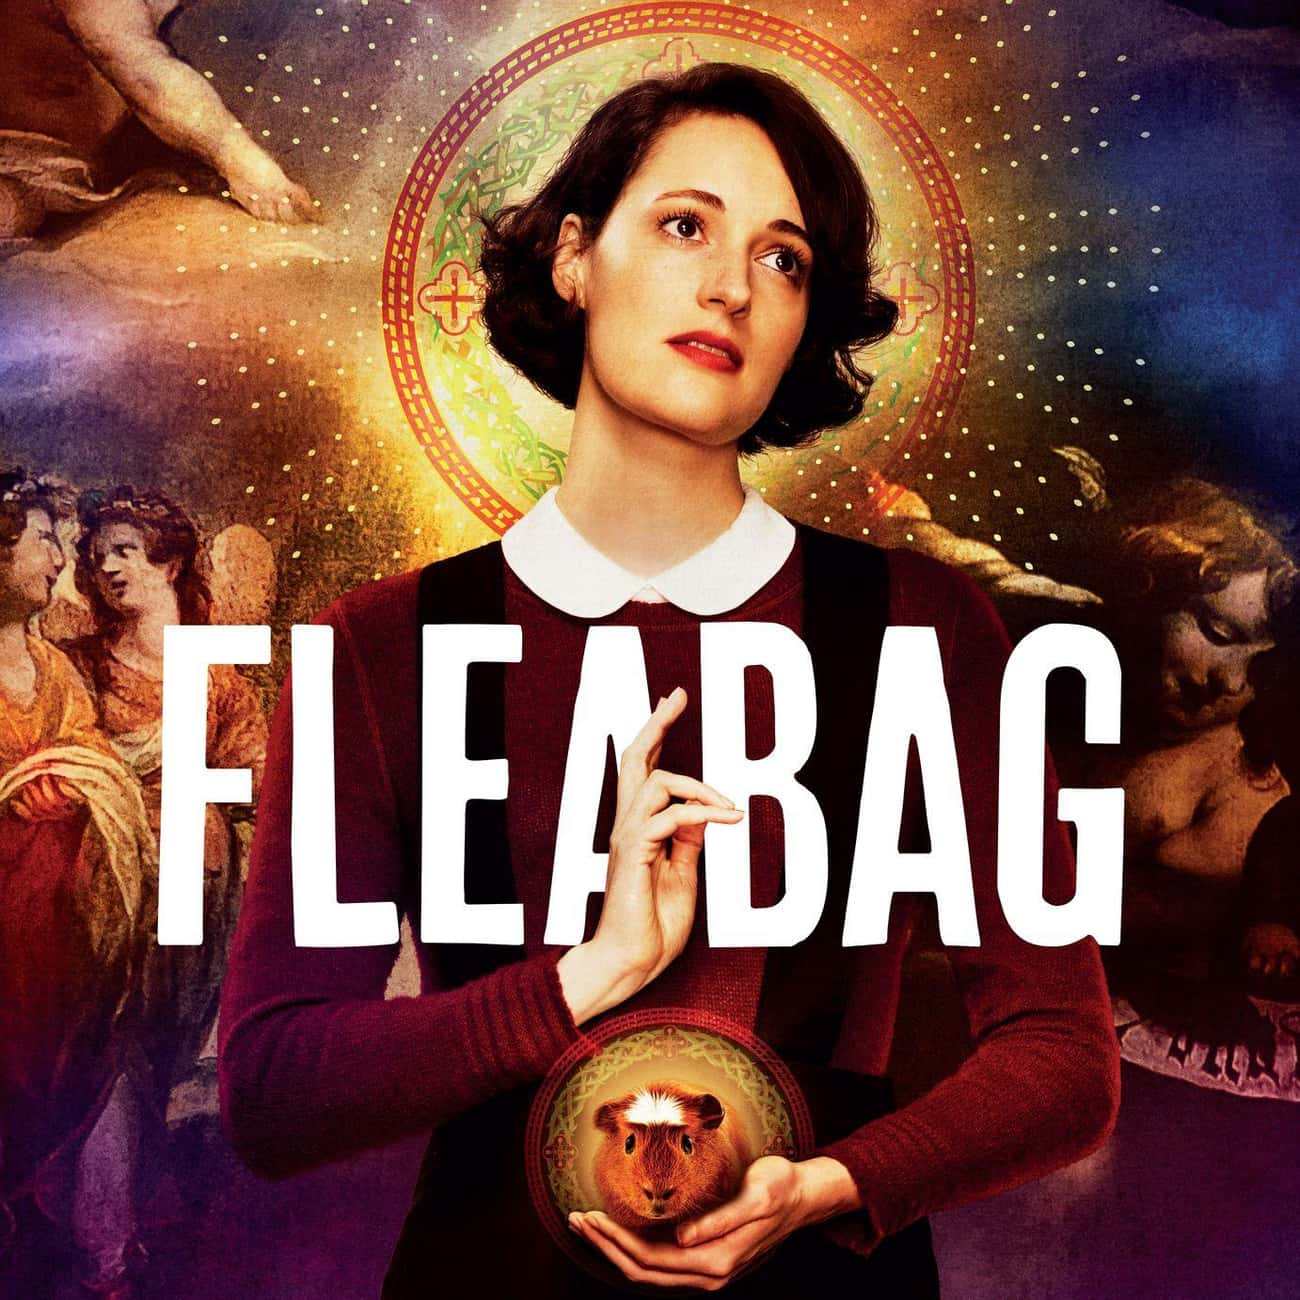 Fleabag is listed (or ranked) 3 on the list What To Watch If You Love 'Girls'